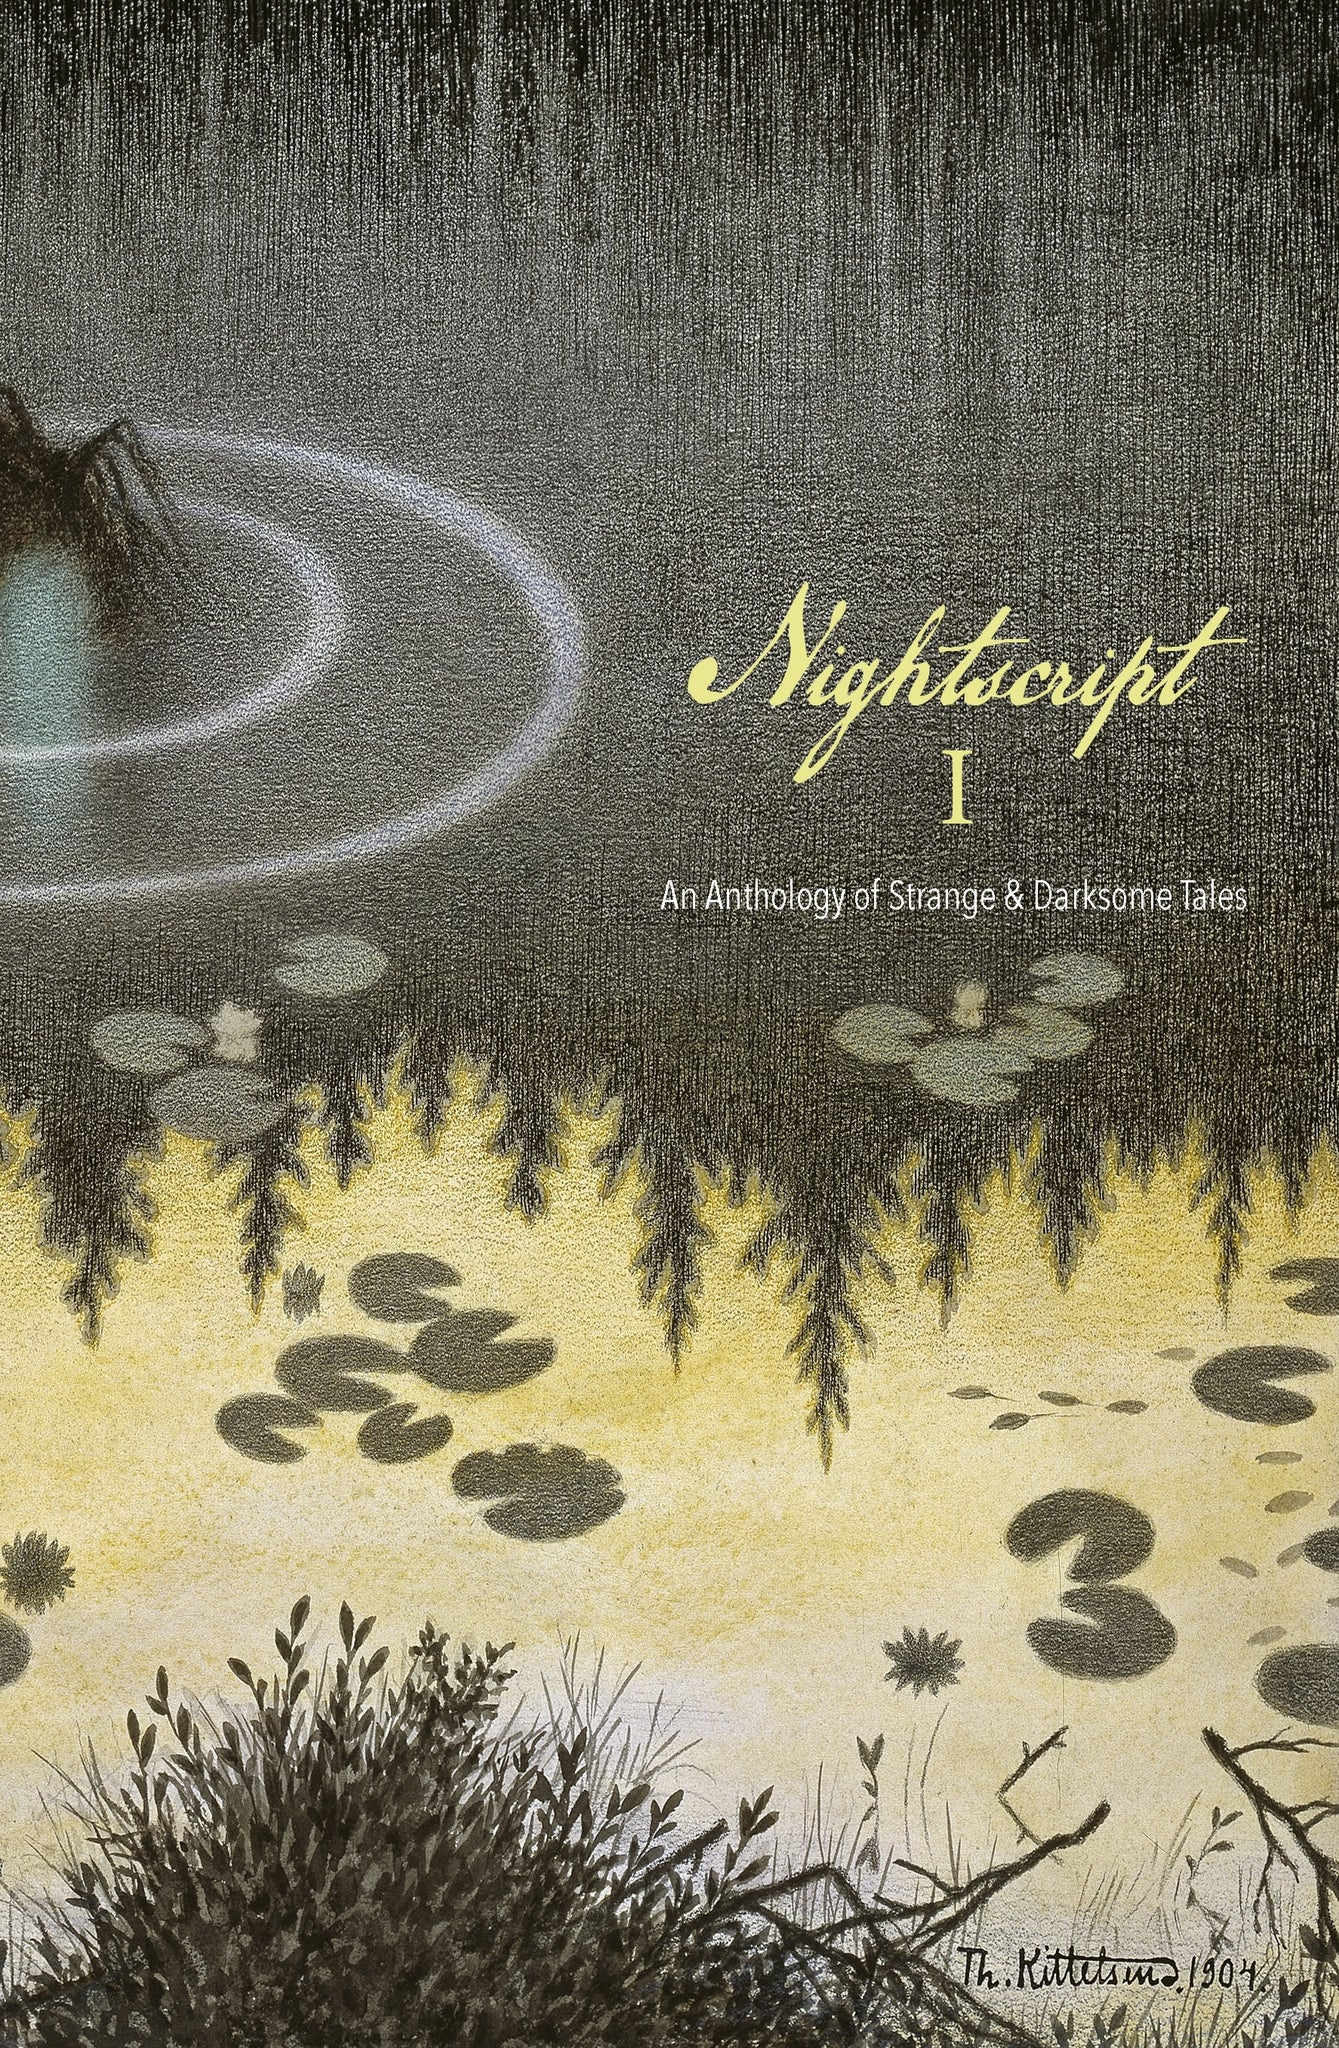 Nightscript I: An Anthology of Strange & Darksome Tales ed by C.M. Muller